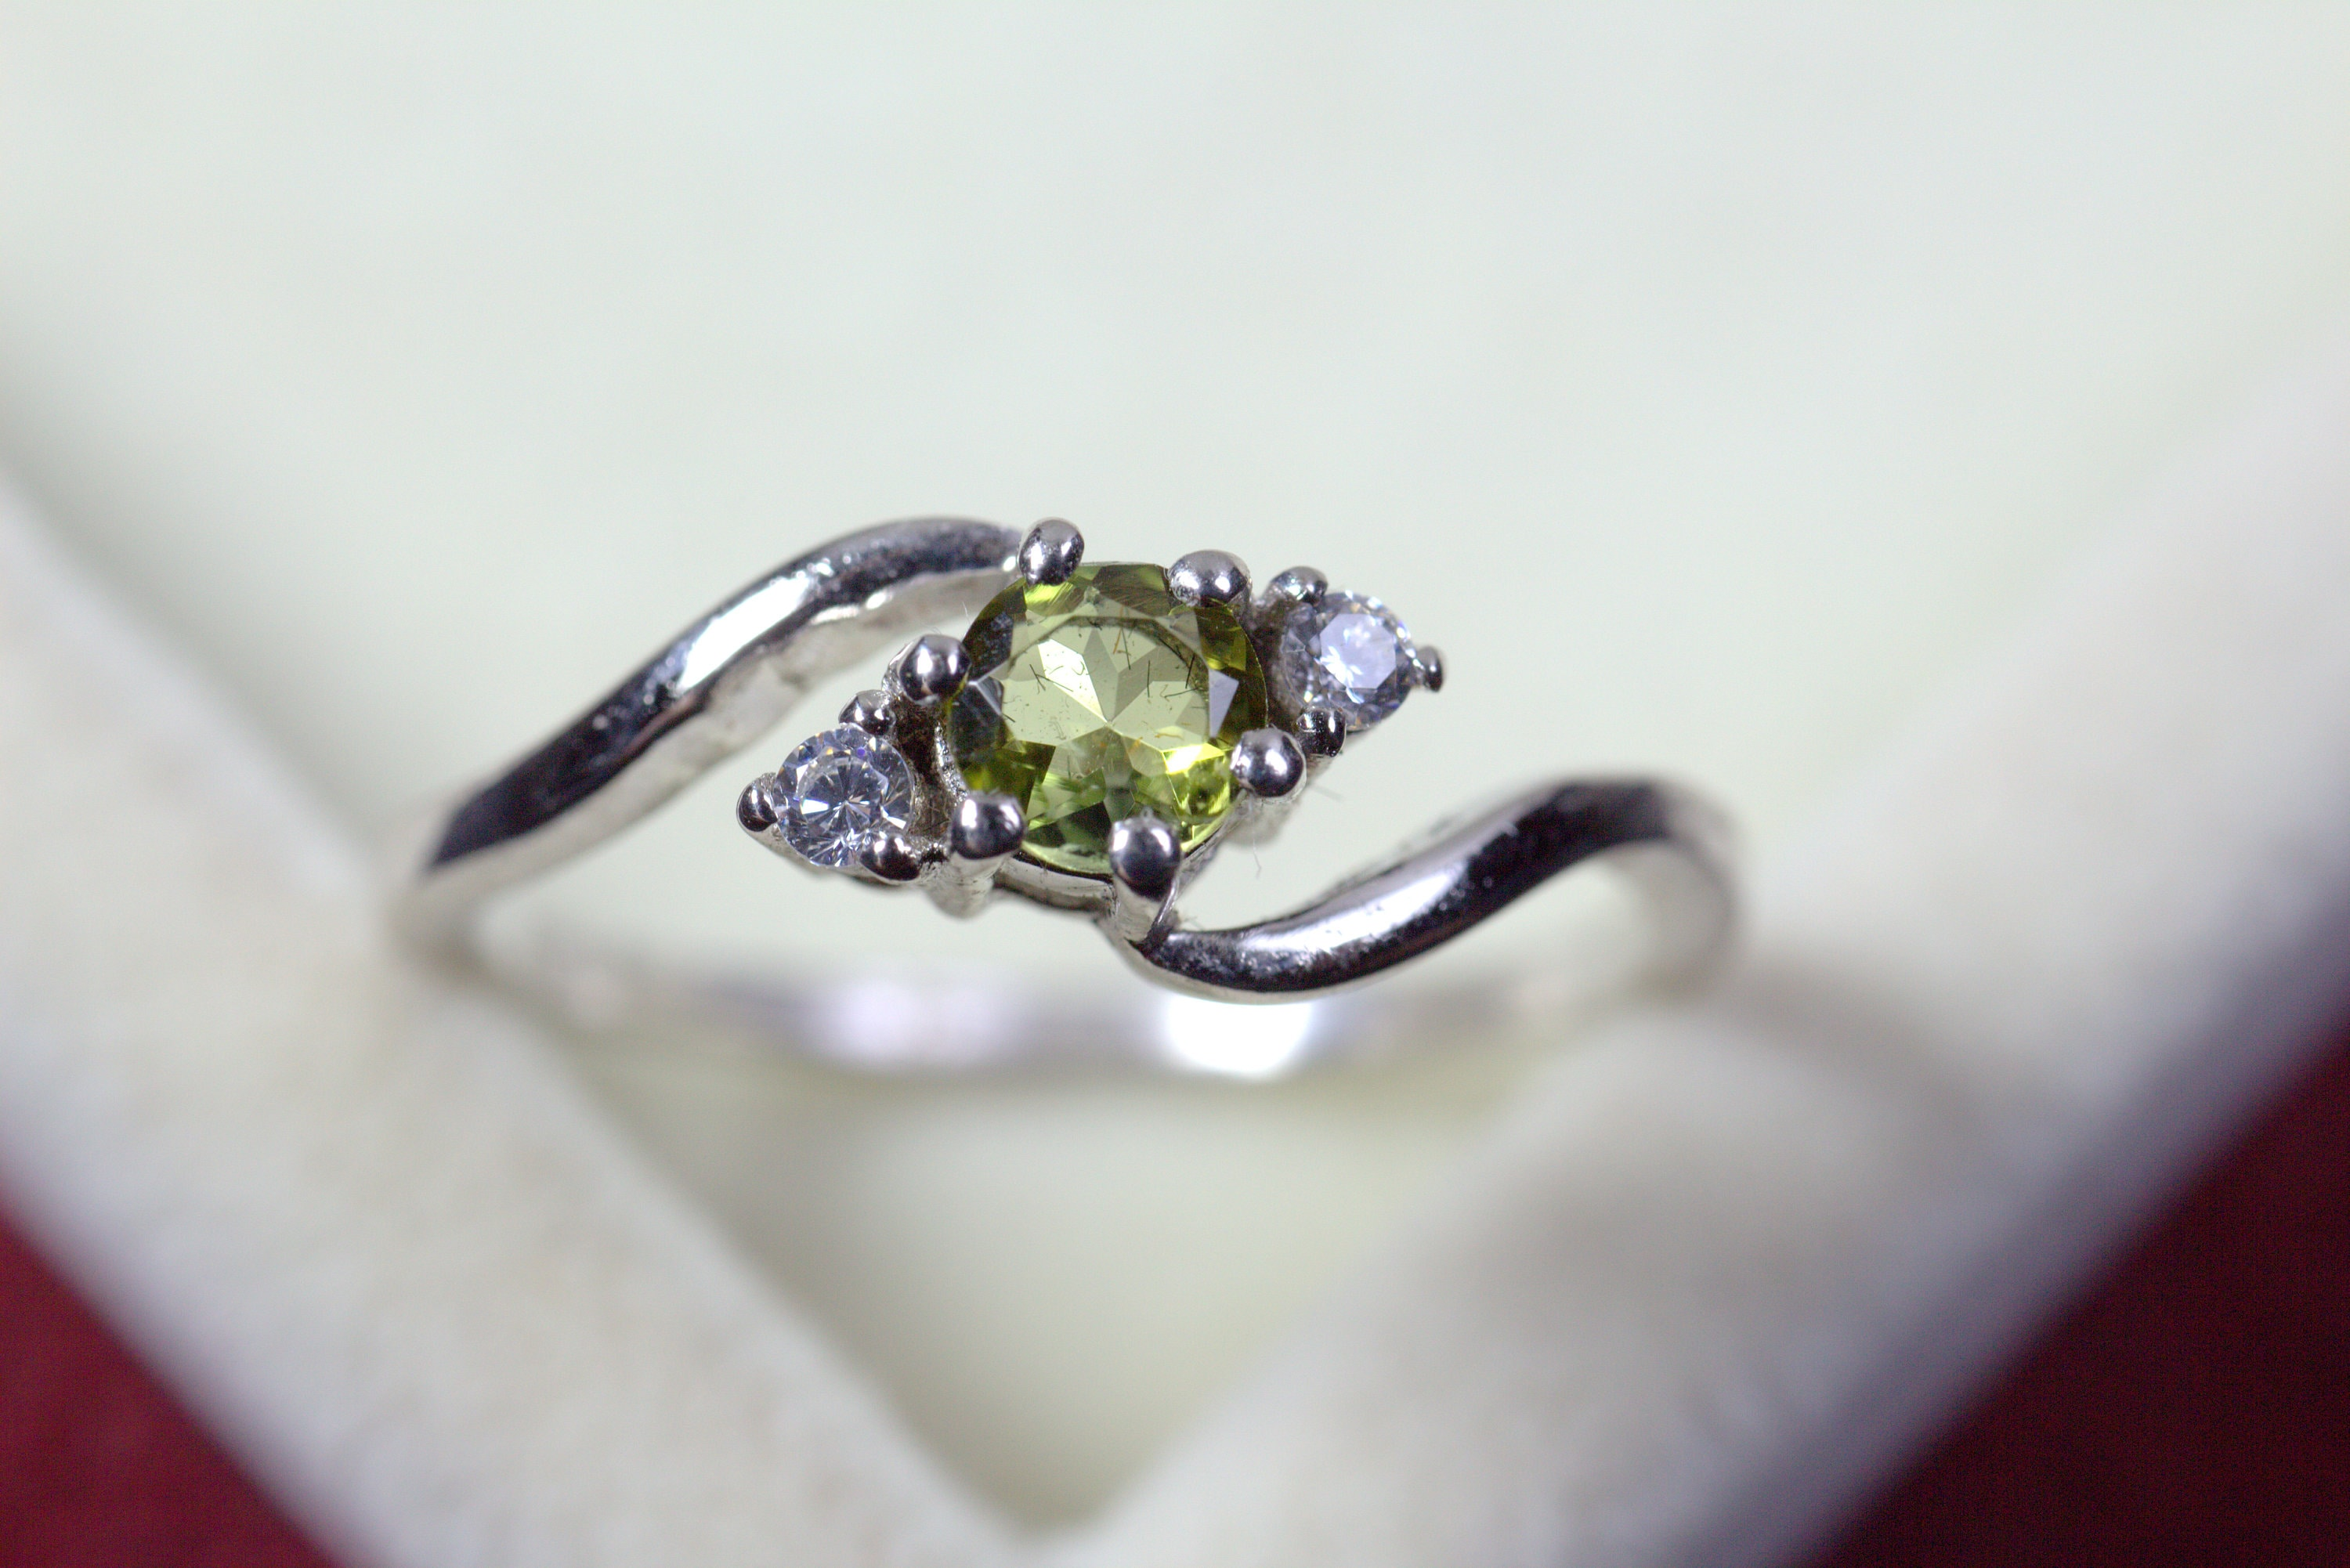 Natural Green Tourmaline Ring Minimalist Ring Sterling Silver Ring Gift for Her Tourmaline Jewellery